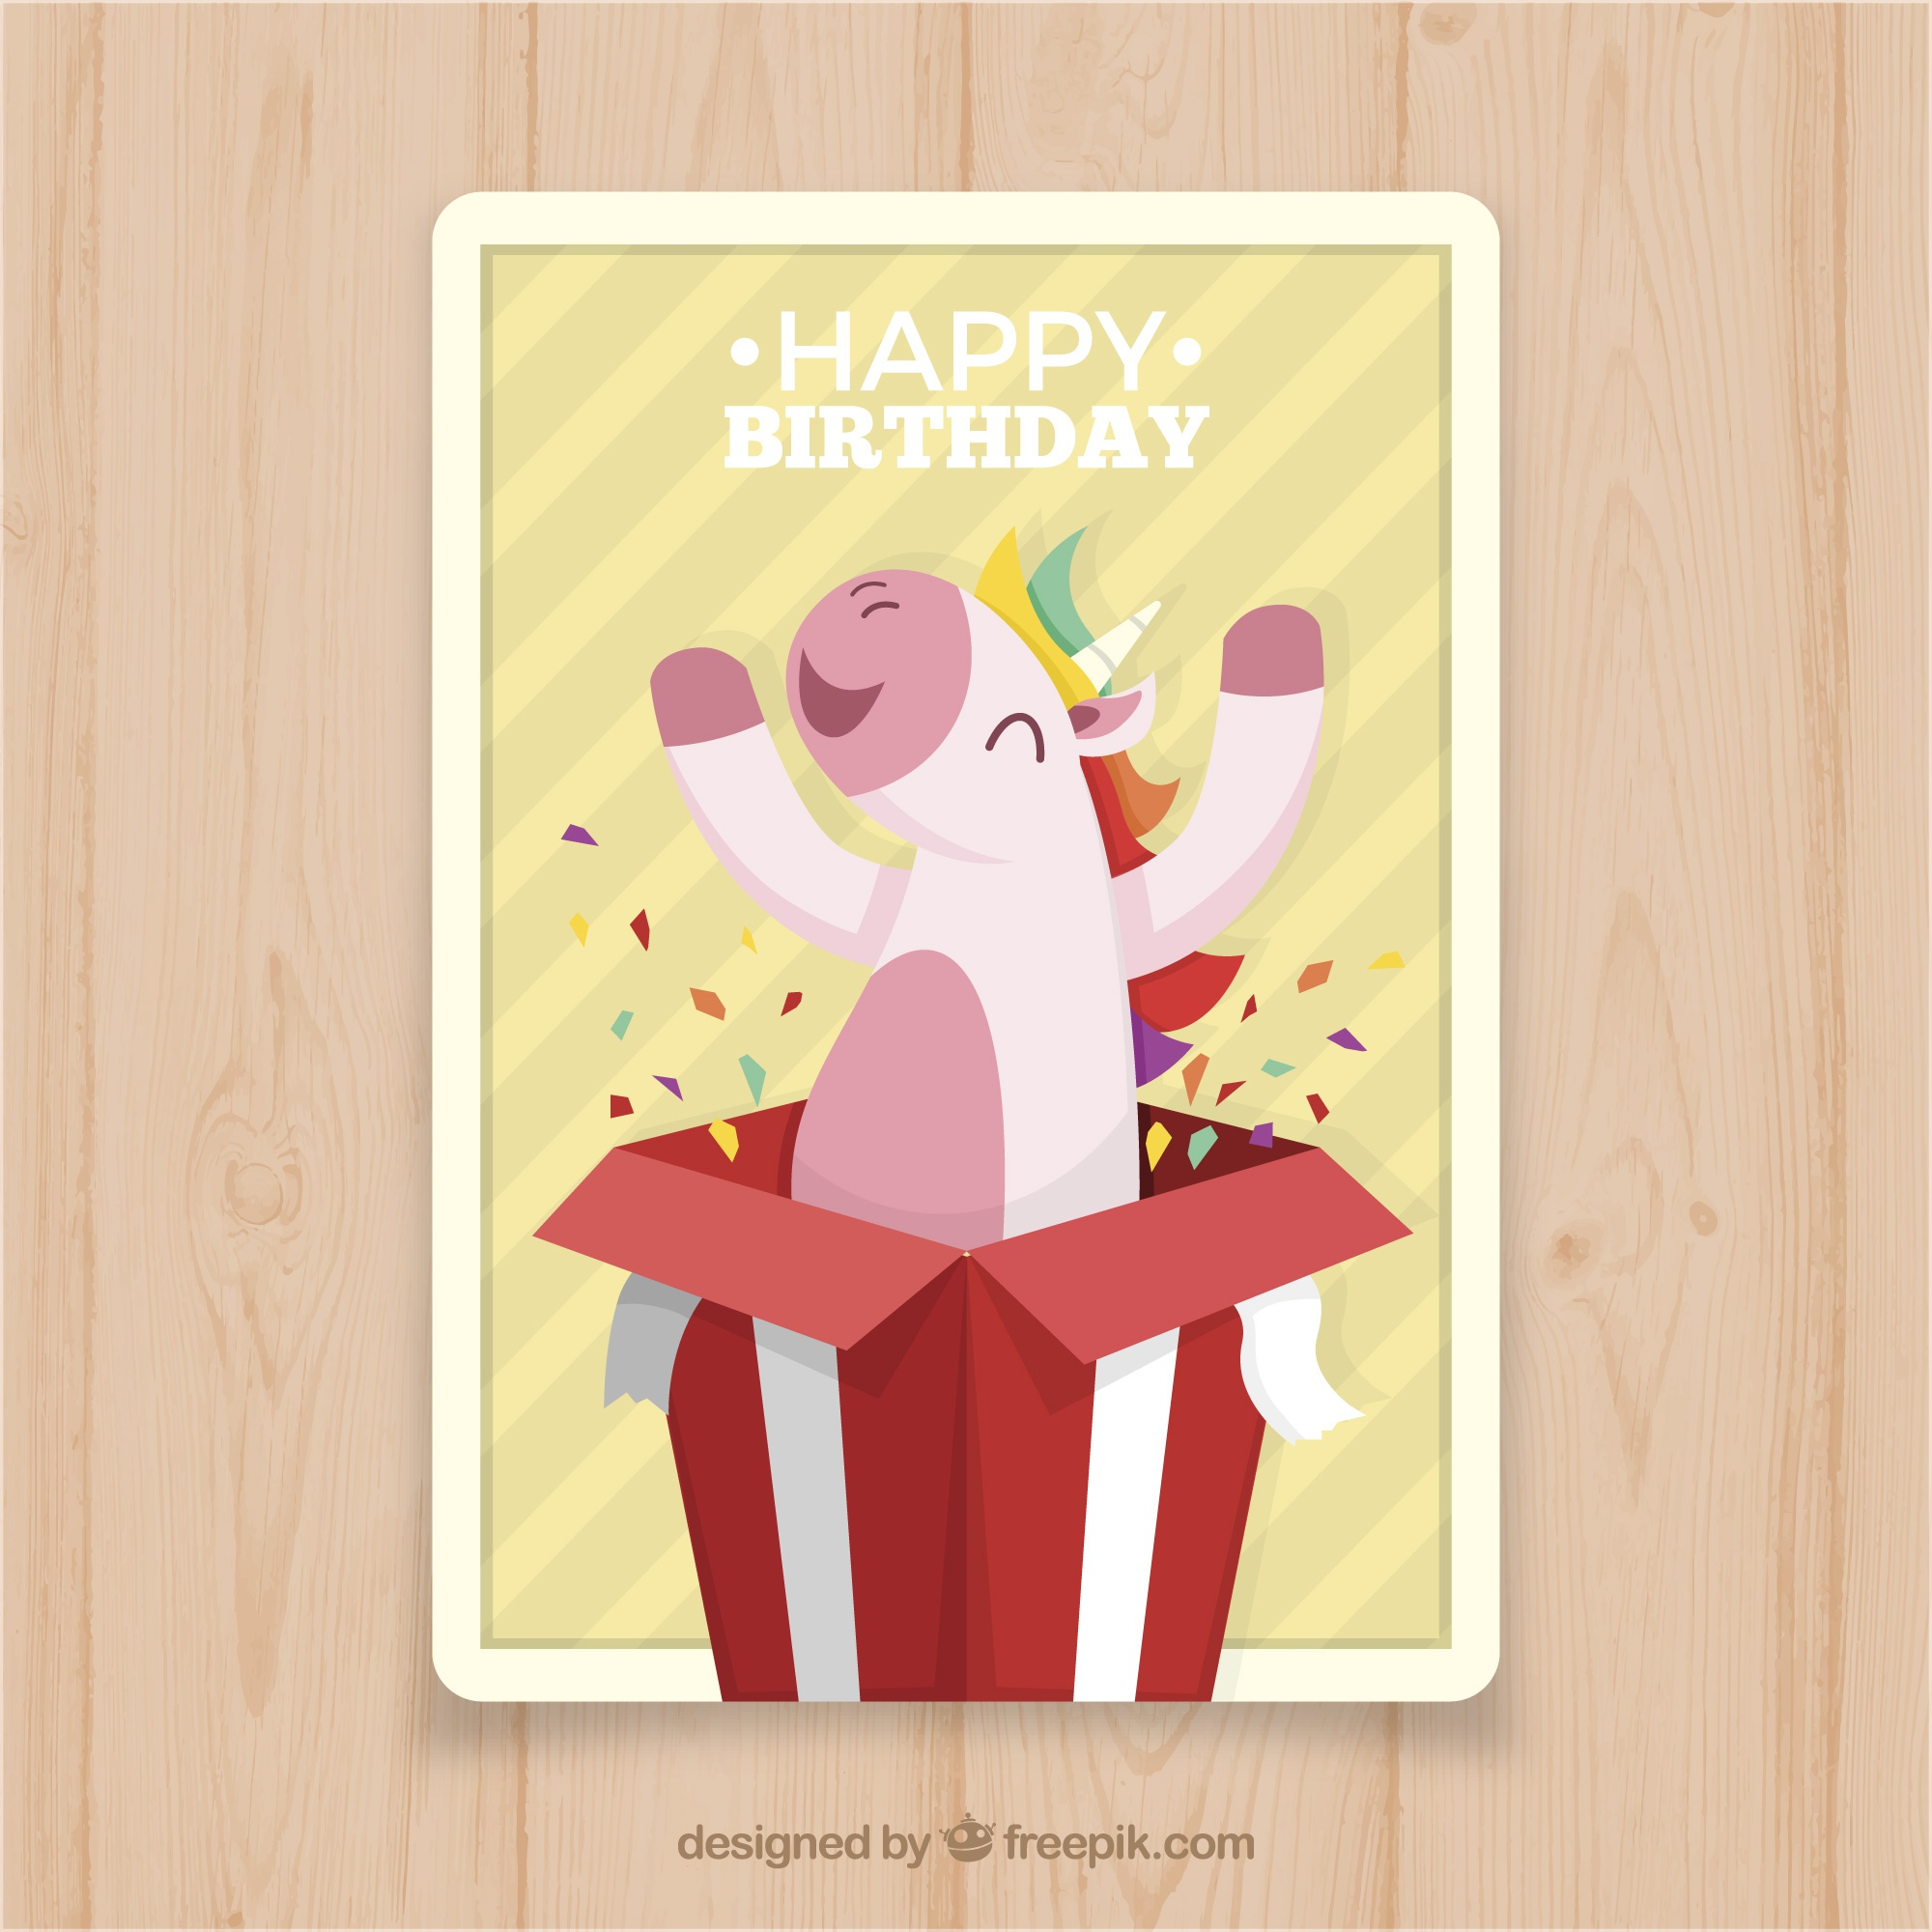 Birthday card with a unicorn coming out of a gift